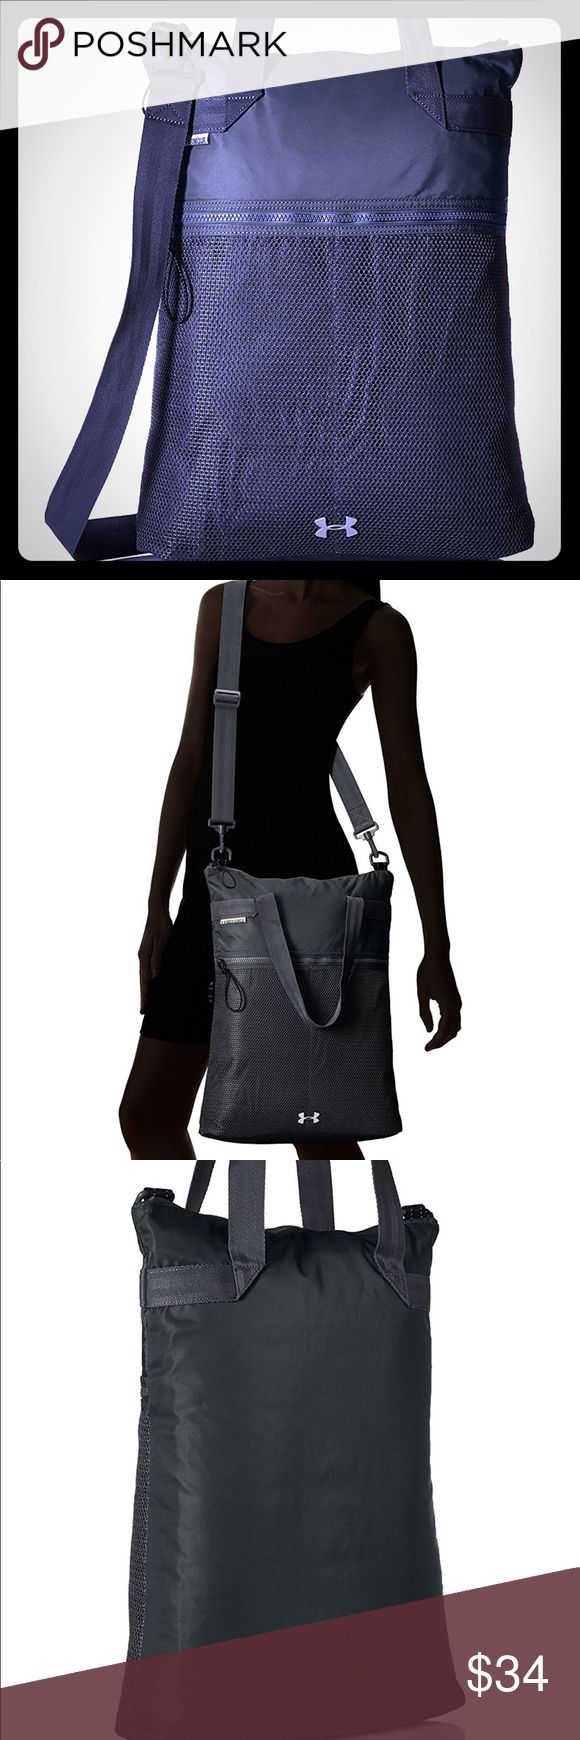 Great under armor ladies bag brand new w/tags nice Perfect size over shoulder under armor bag, not overwhelming size like some gym bags can be. This is a great quality bag, save a good deal of money compared to retail price Under Armour Bags Backpacks